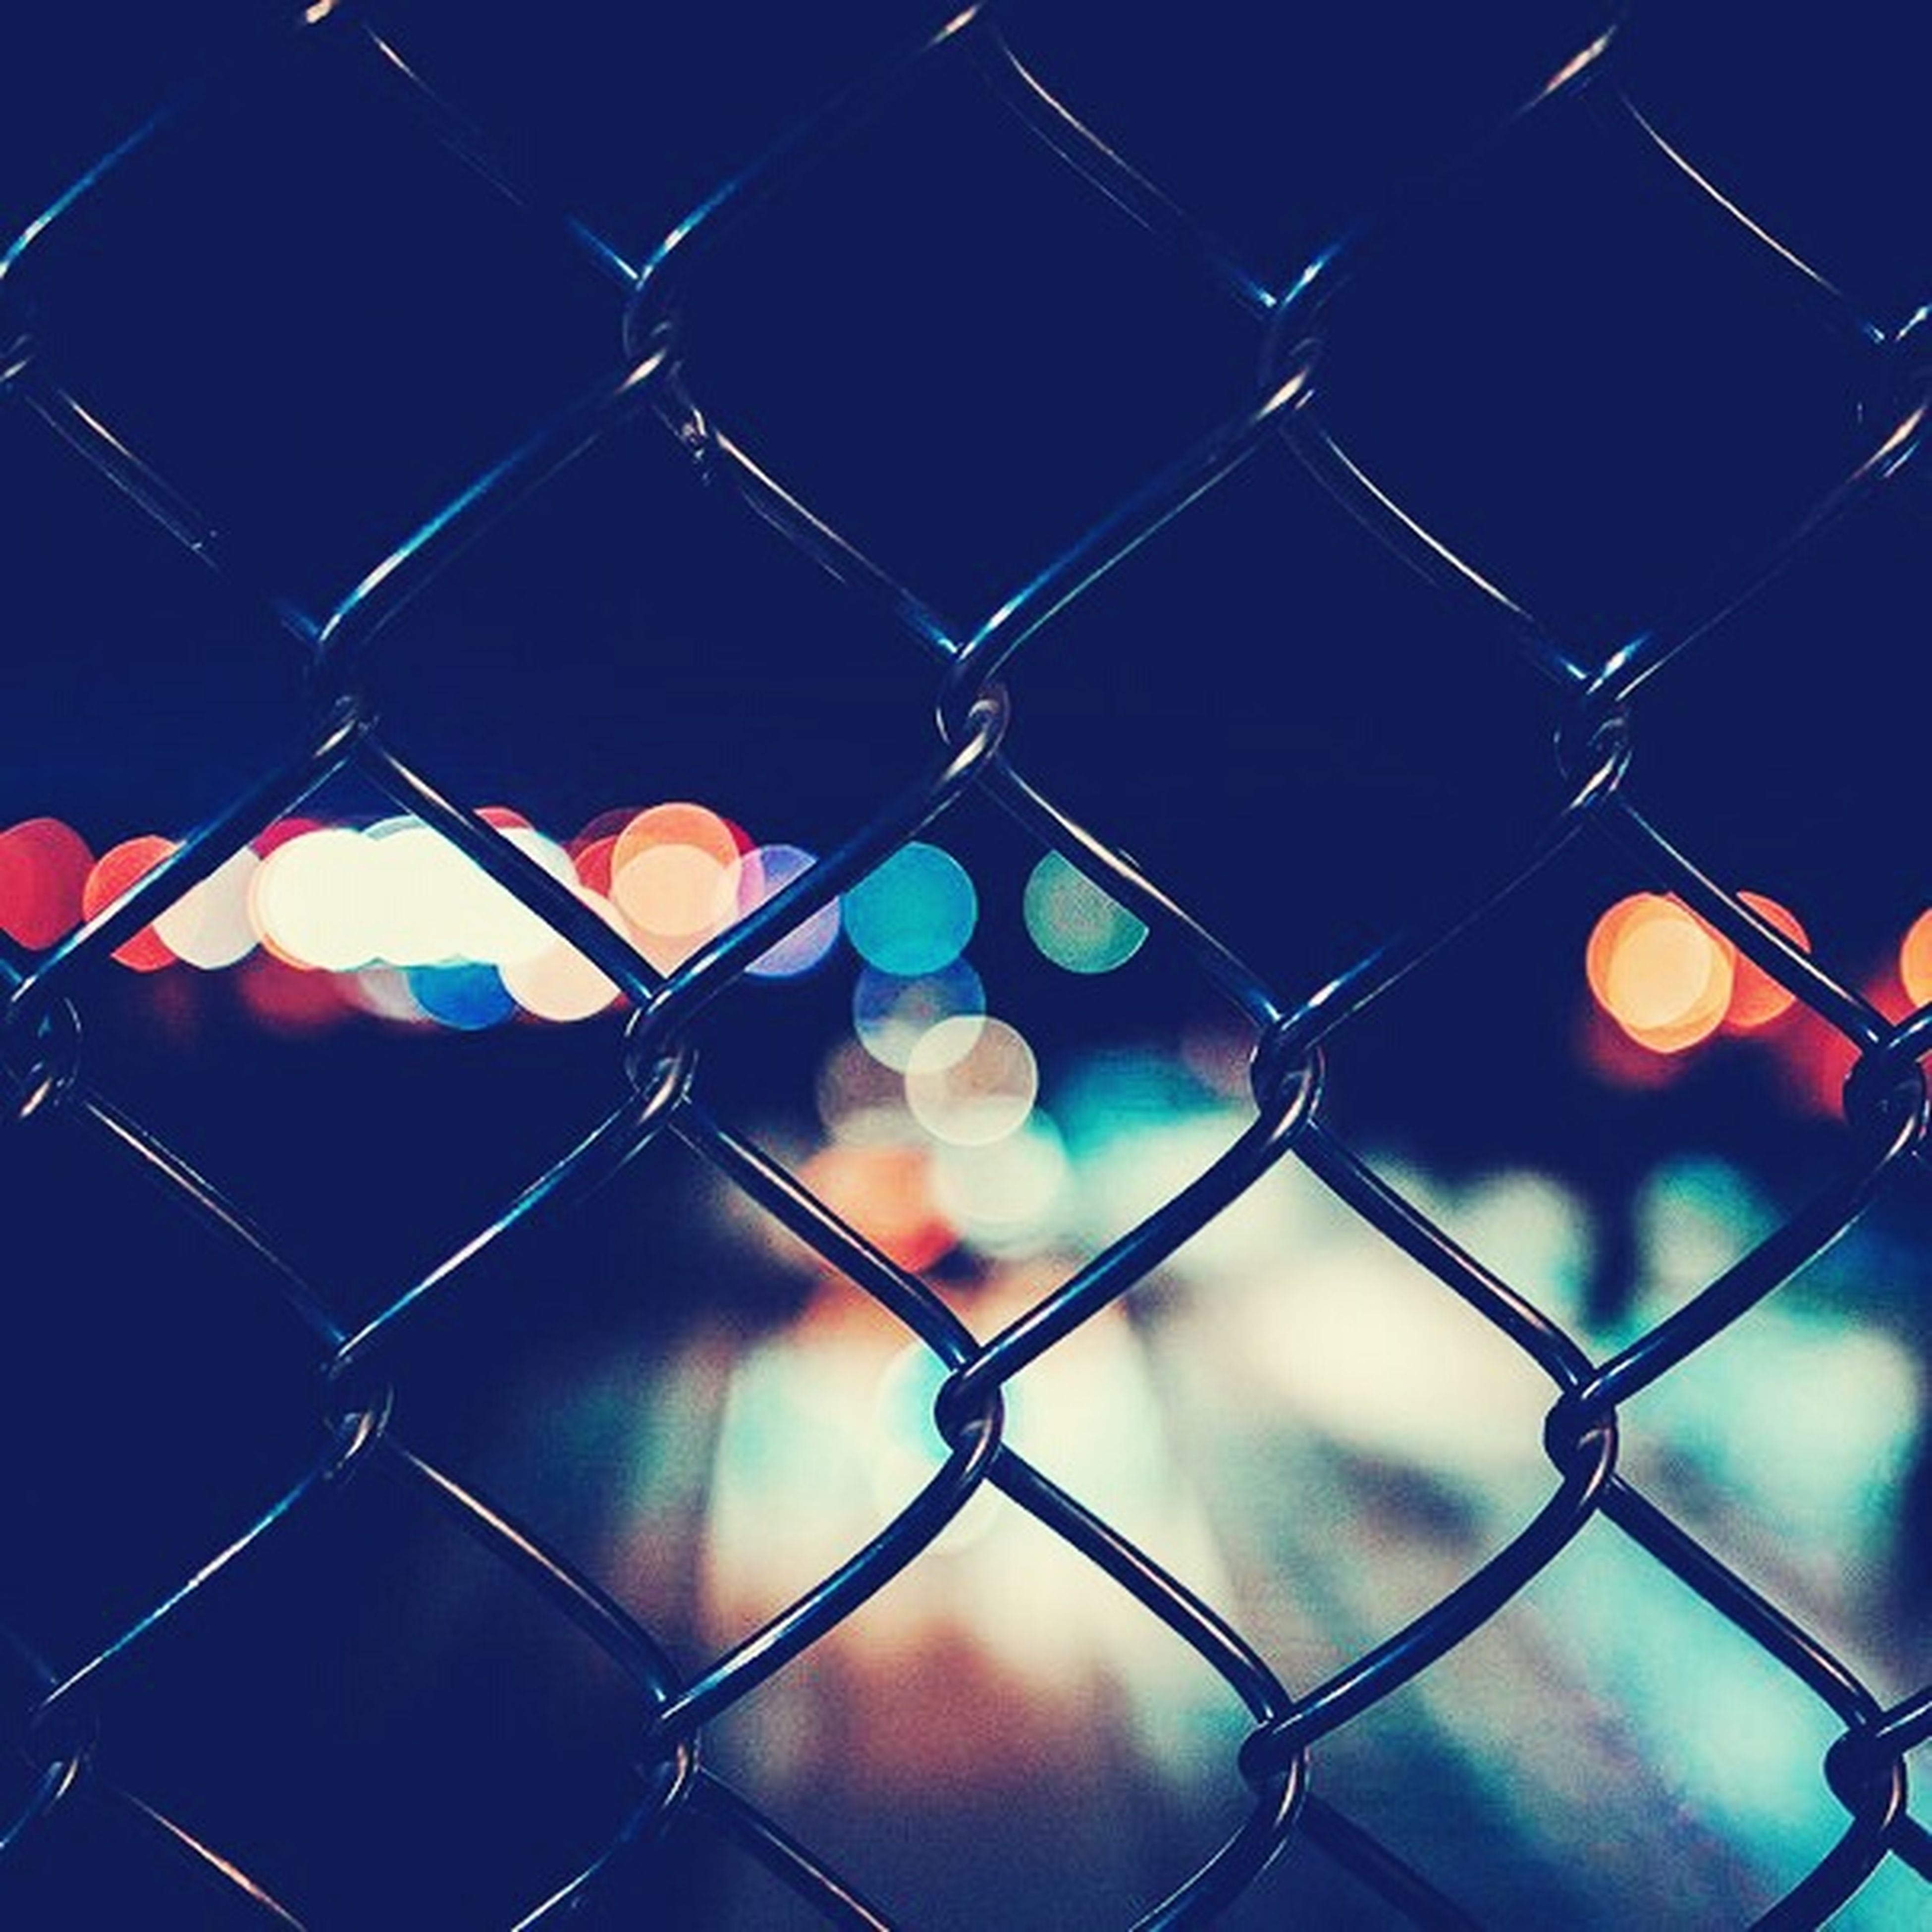 chainlink fence, full frame, safety, protection, fence, security, backgrounds, focus on foreground, metal, pattern, close-up, no people, forbidden, metal grate, day, outdoors, chain link fence, metallic, detail, design